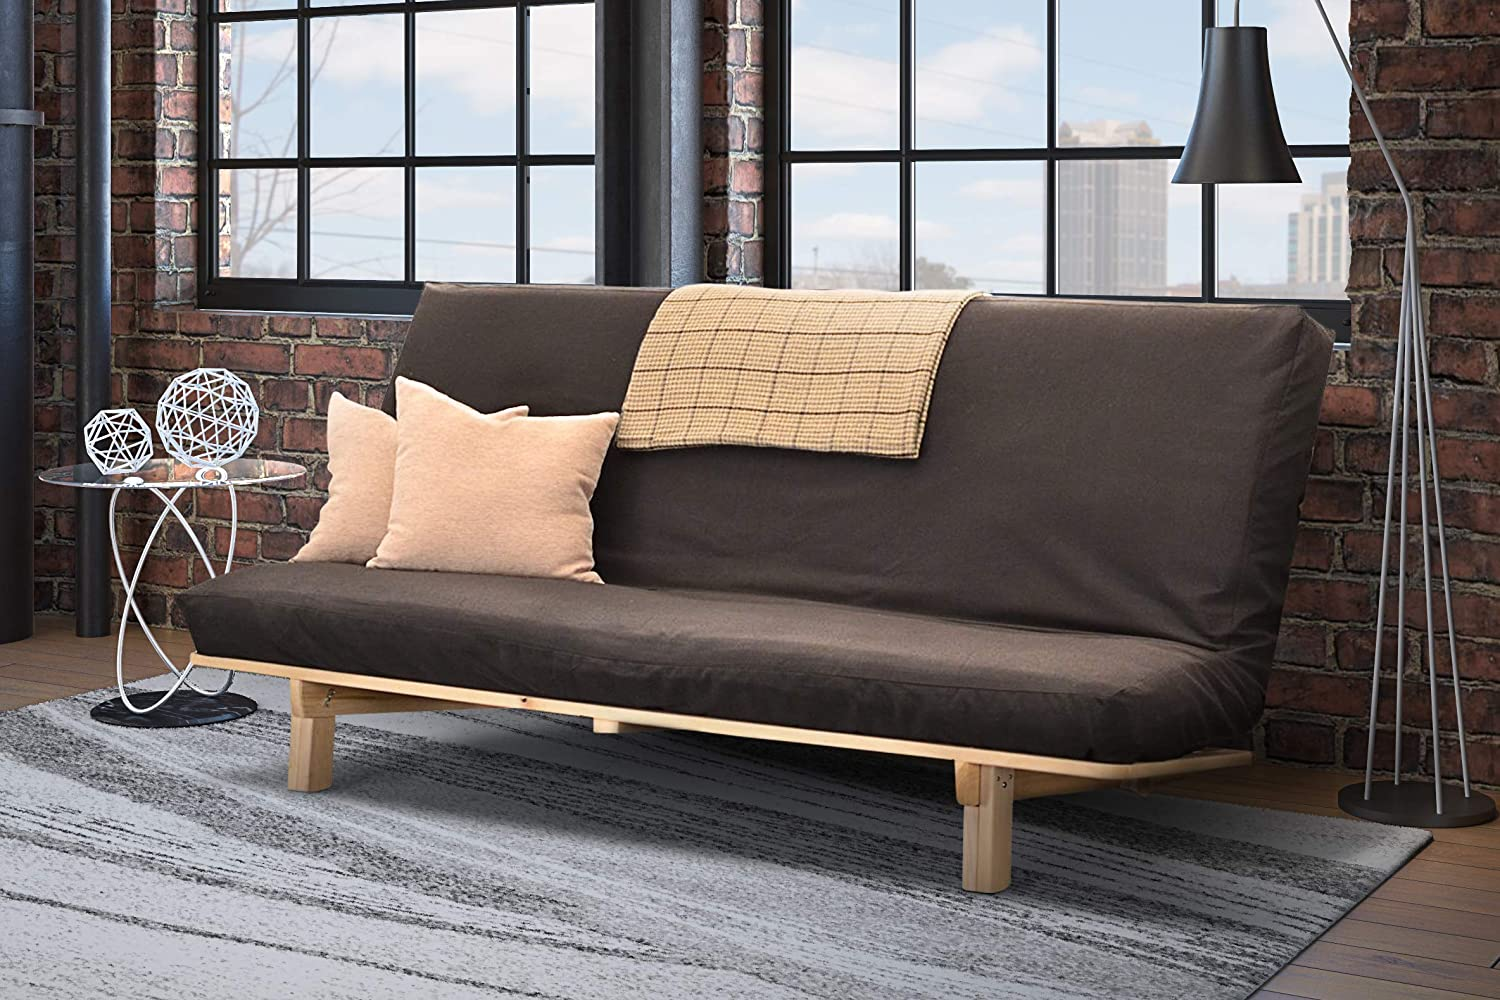 Top 10 Best Futon Frames Reviews in 2020 1